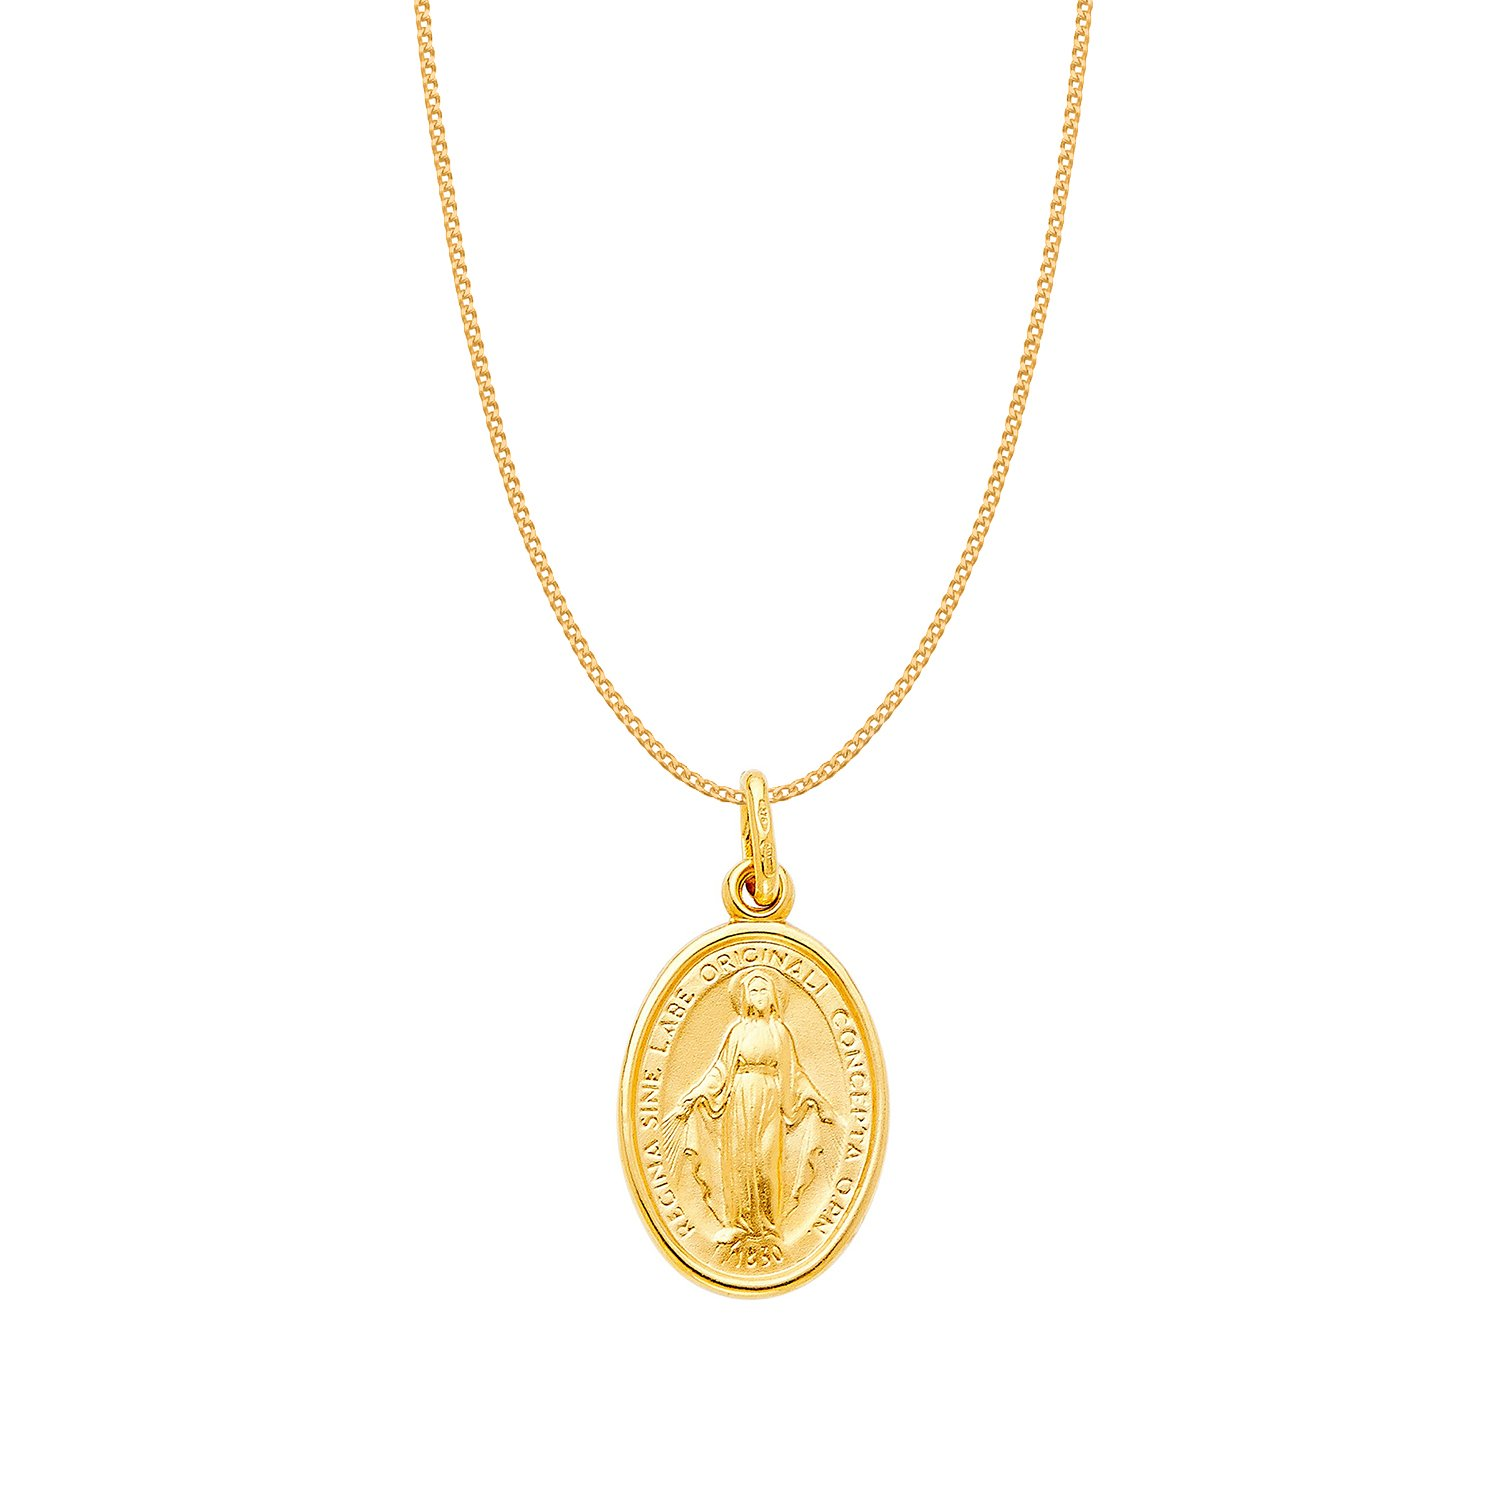 Ashley Jewels 14K Yellow Gold Plated Fn Simulated Diamond Studded Religious Lord Ganesha Pendant Necklace With Chain